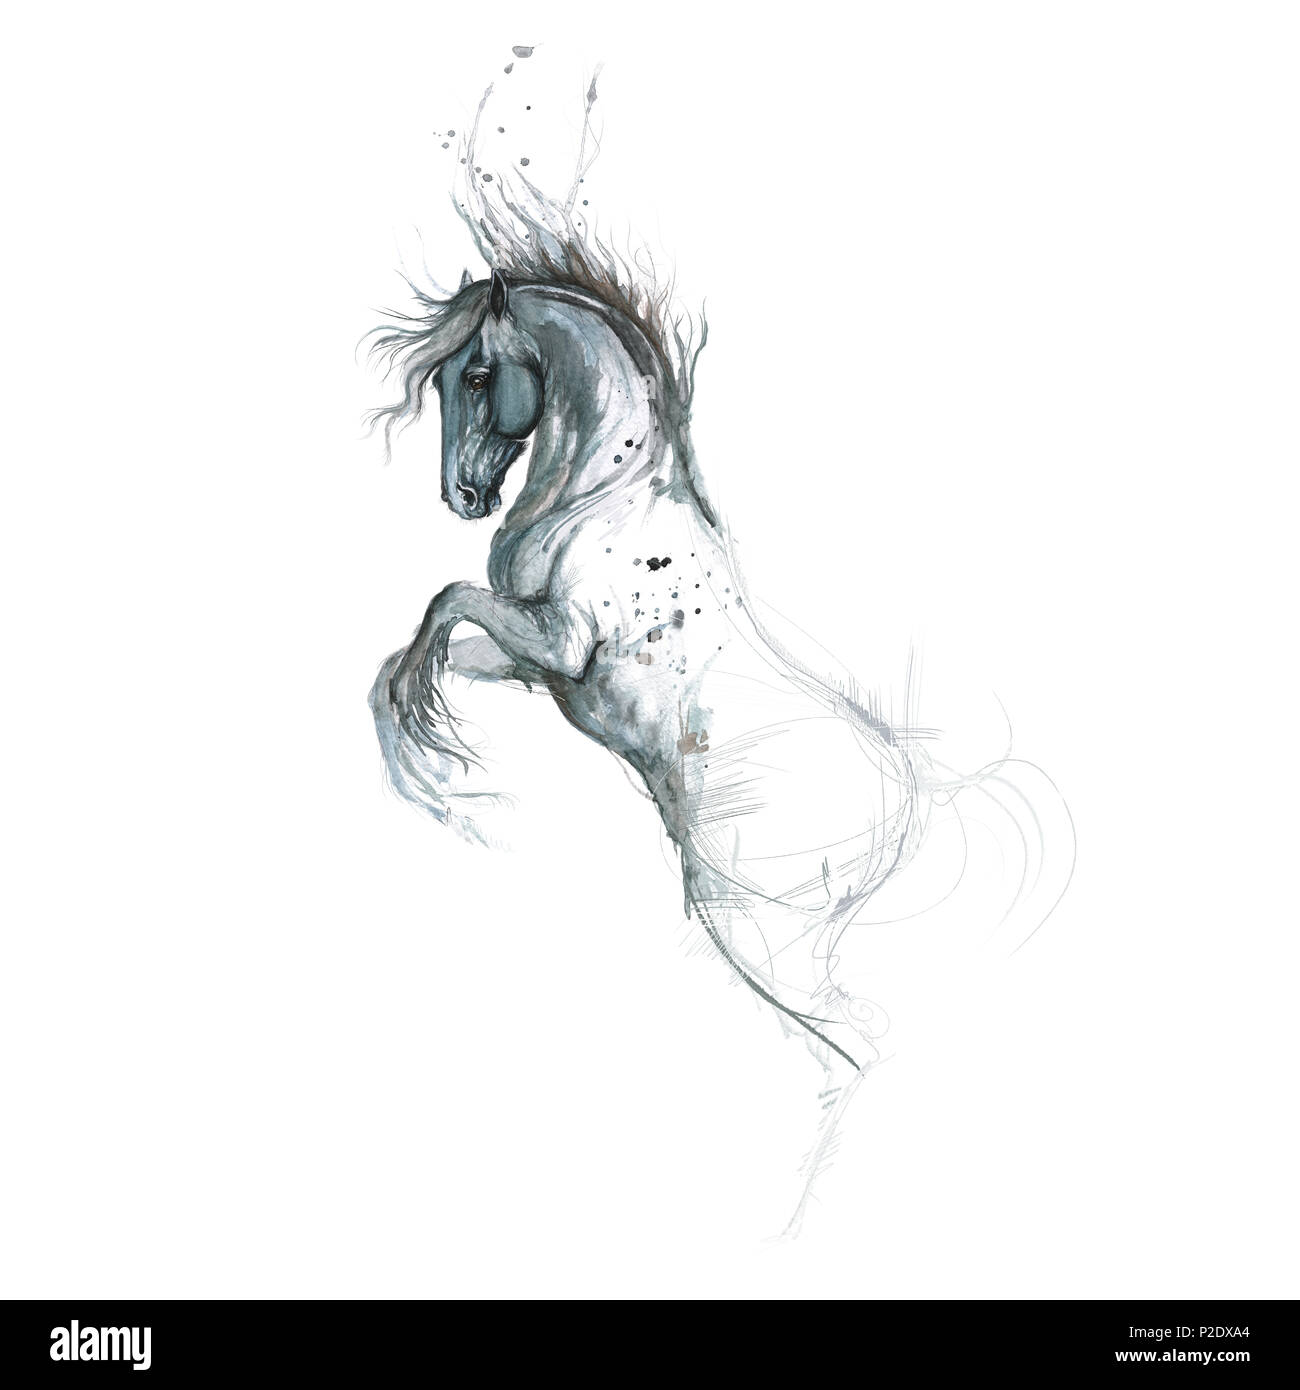 Painting Of Horse High Resolution Stock Photography And Images Alamy